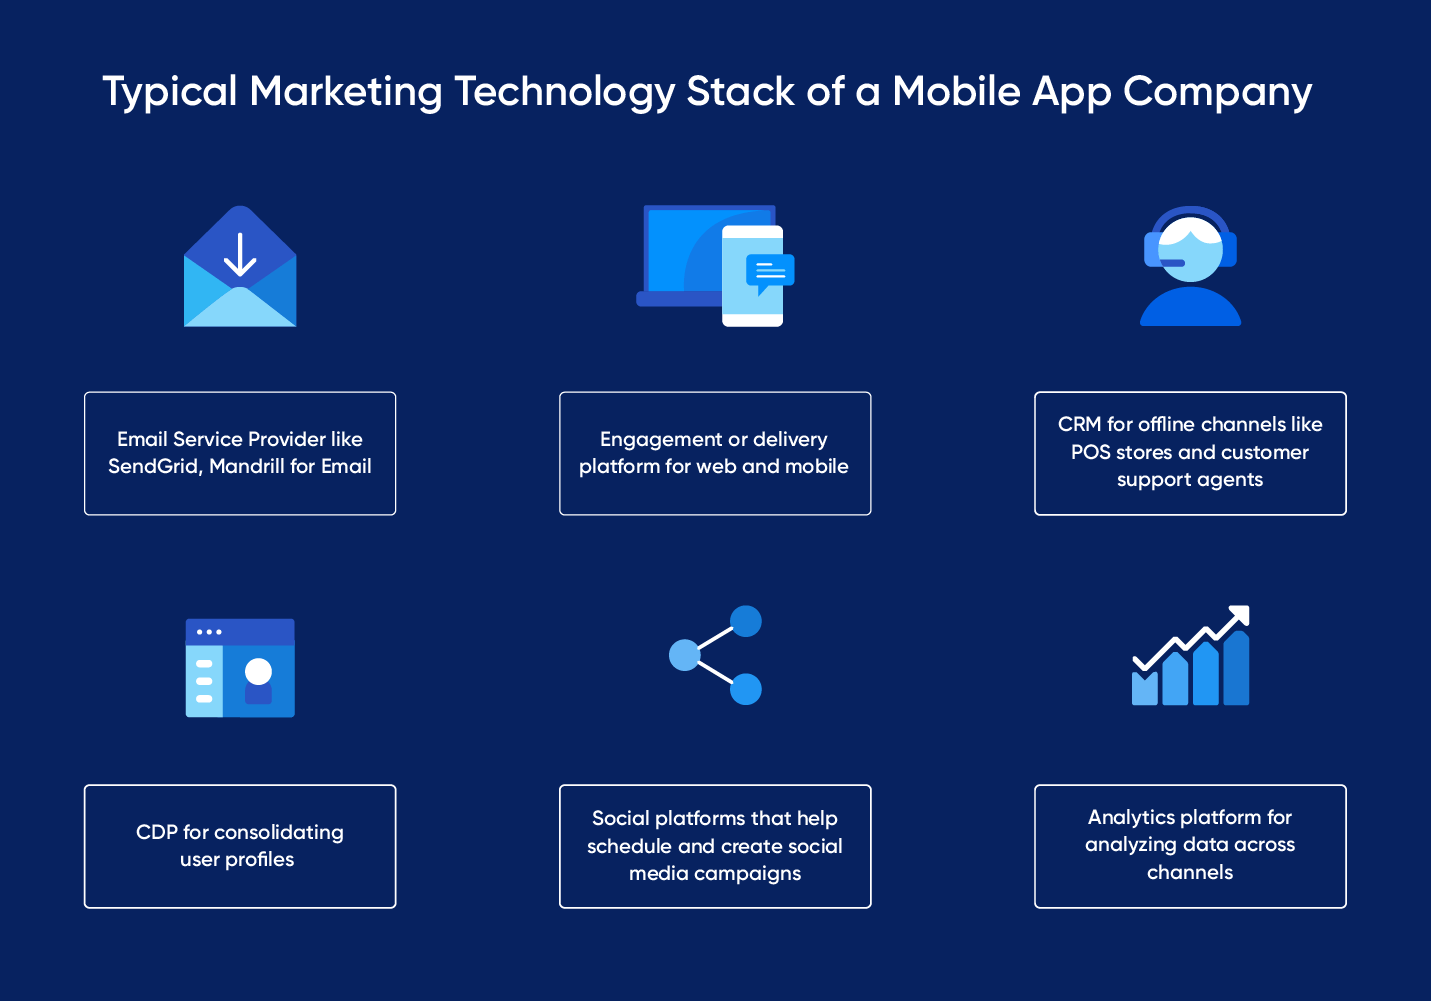 Marketing Technology Stack of a Mobile App Company